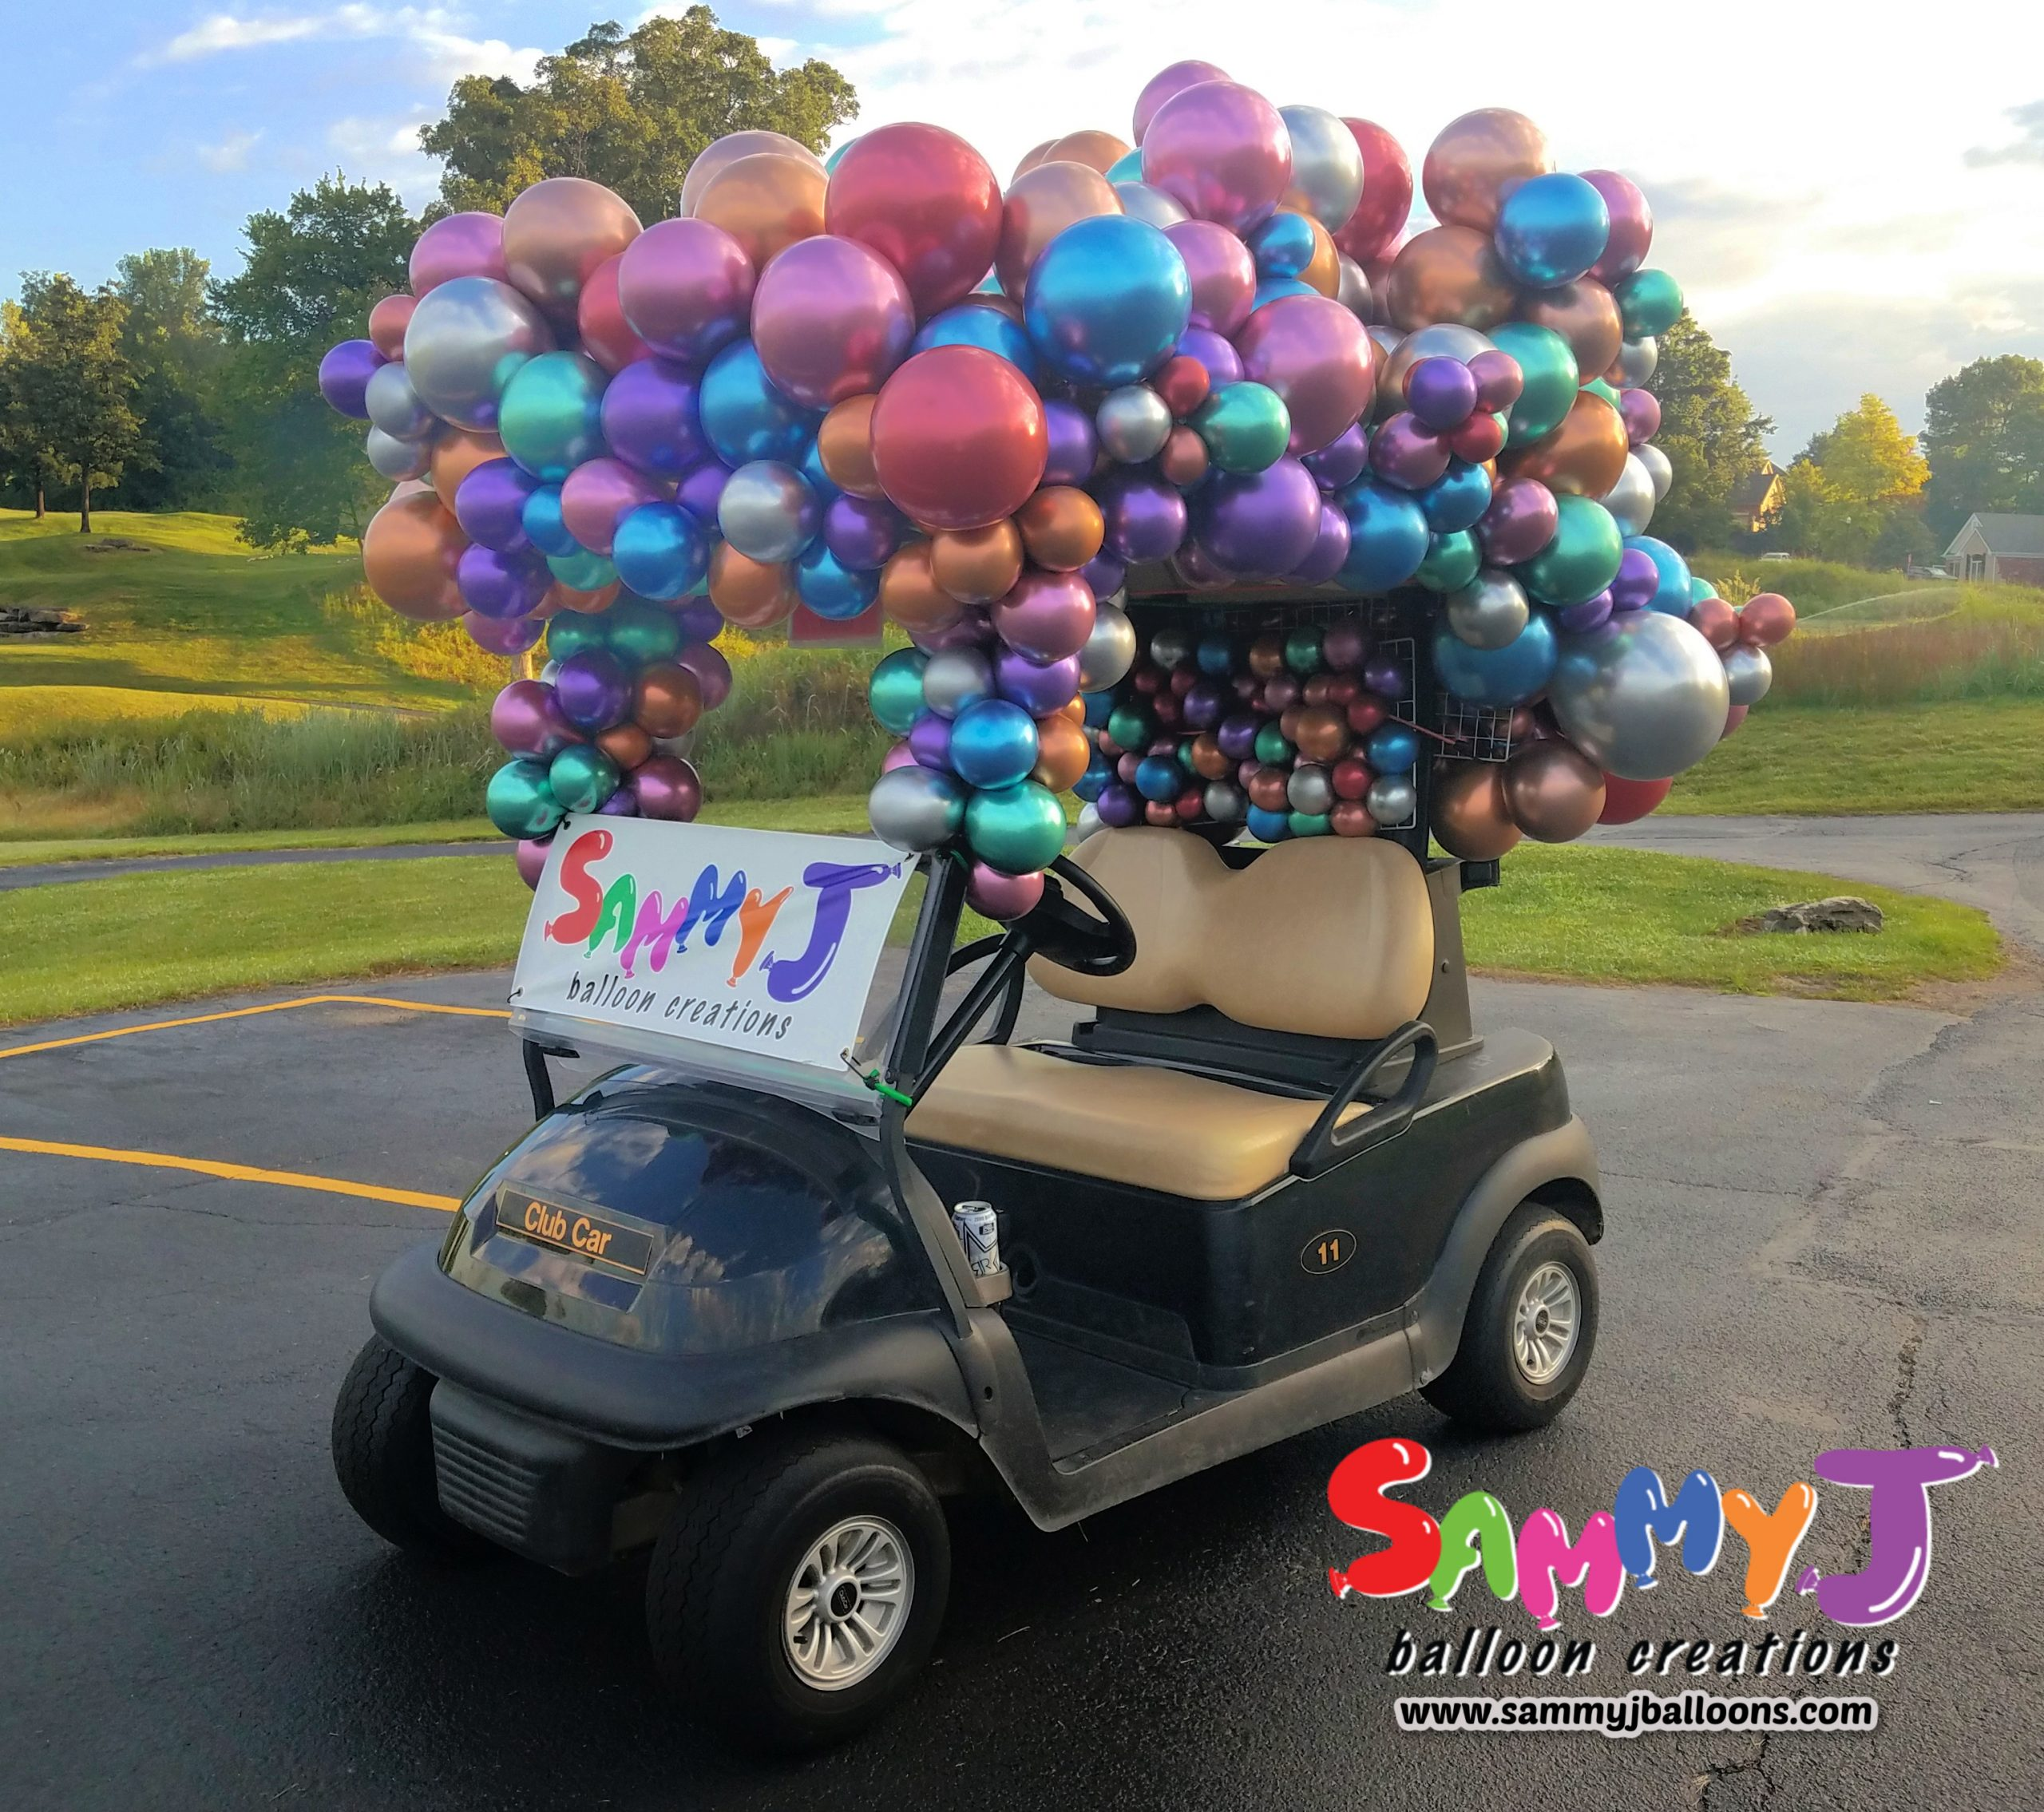 SAMMY J Balloon Creations st louis balloons golf cart 2020